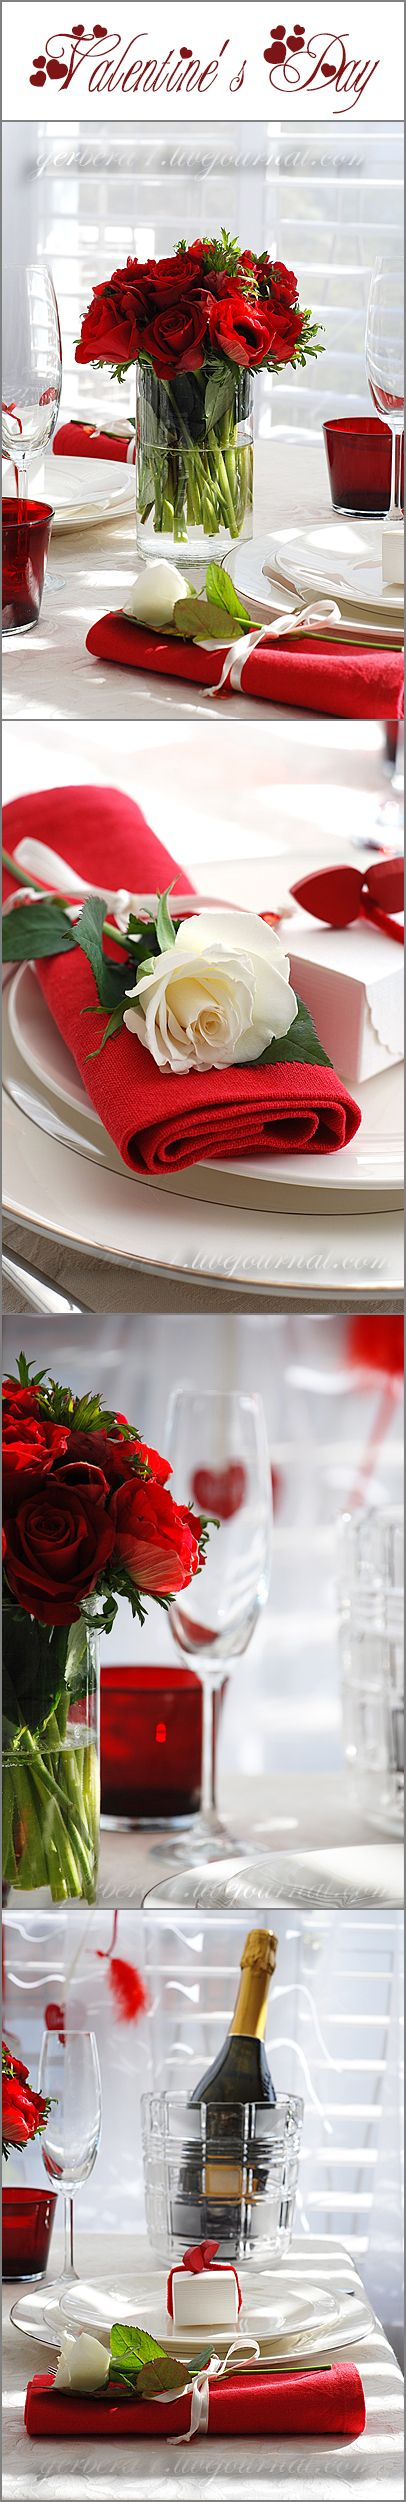 Valentine's Day table decoration ideas by Elena Korostelev